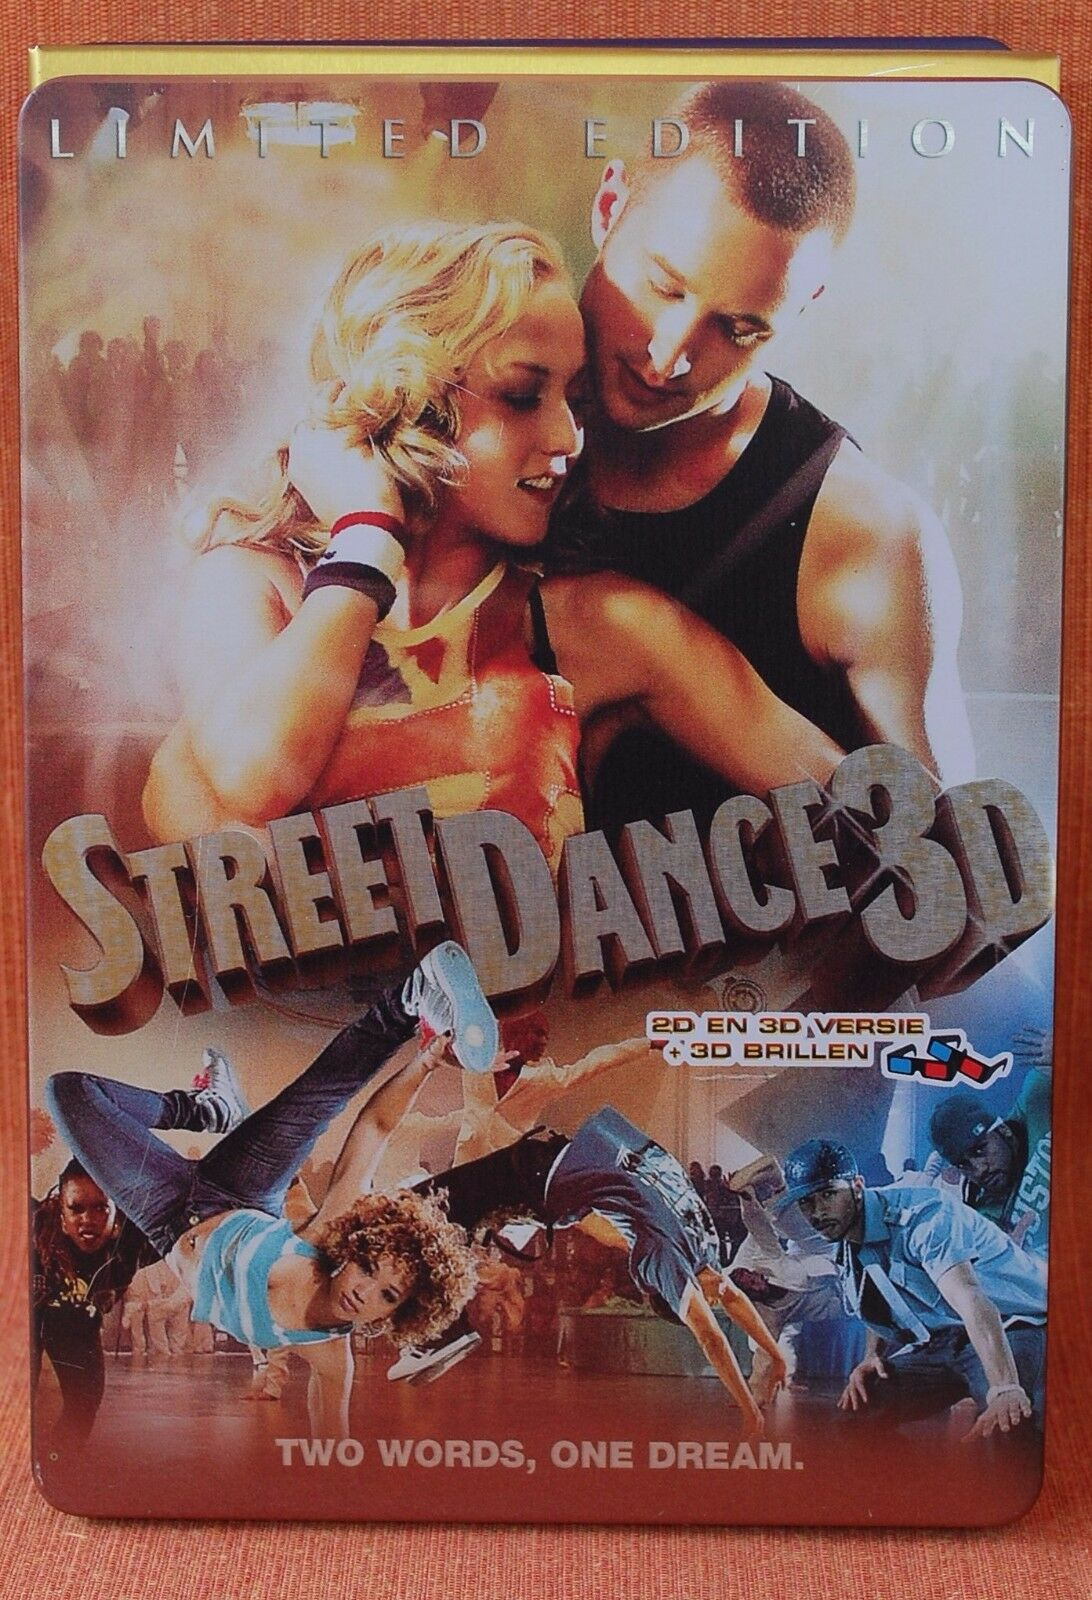 STREETDANCE 3D  -*** METAL CASE LIMITED EDITION + 2 X 3D BRIL ***